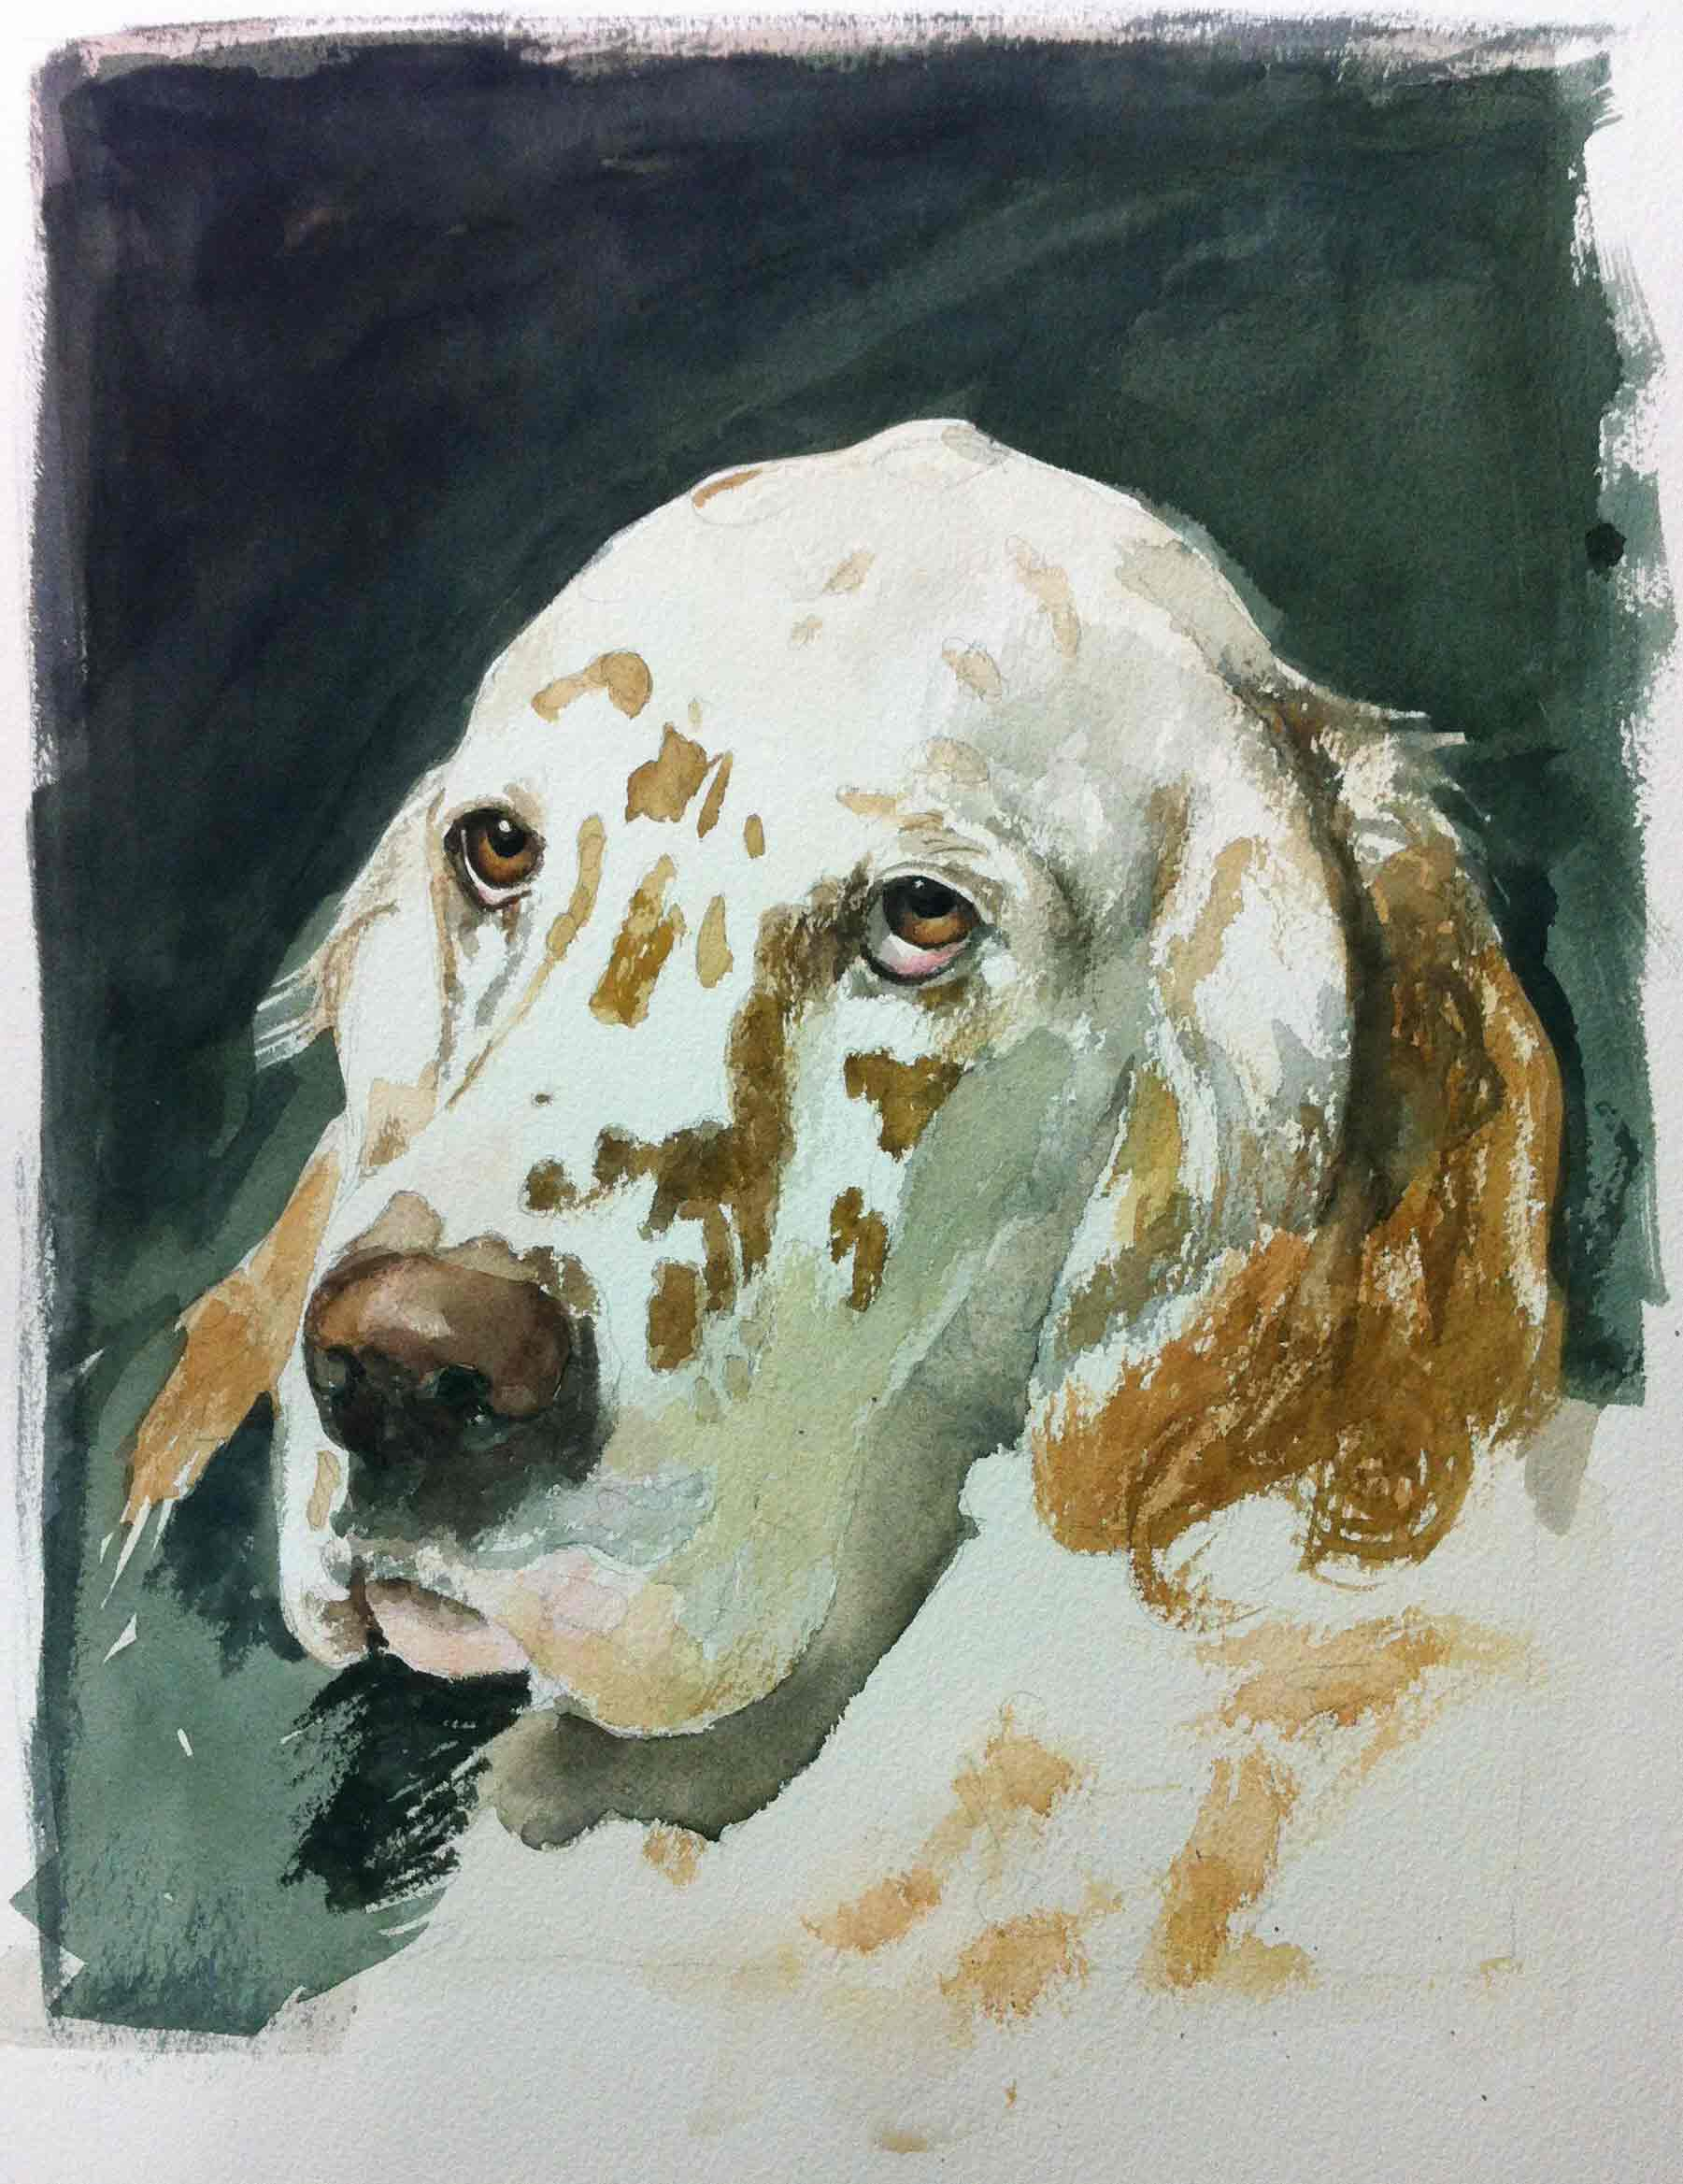 iPhone shot of Trout the Dog a watercolor in progress Dec12/13